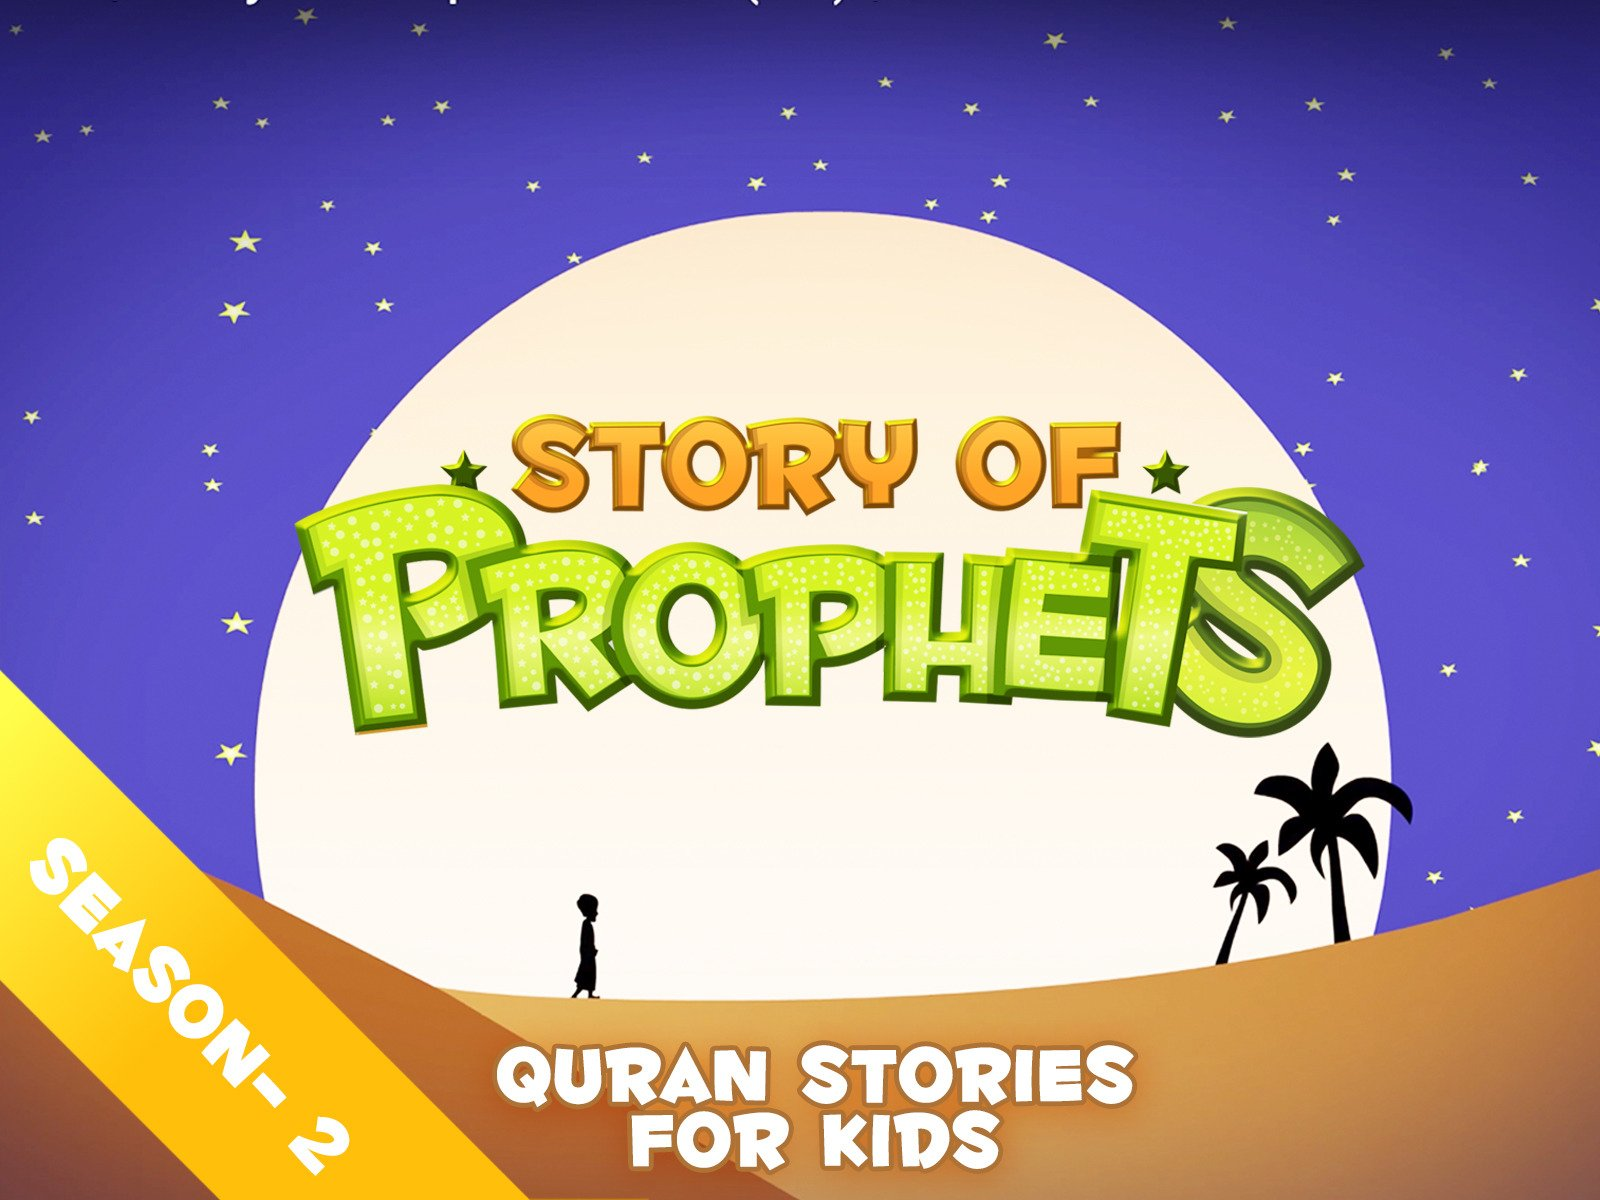 Quran Stories for Kids - Season 2